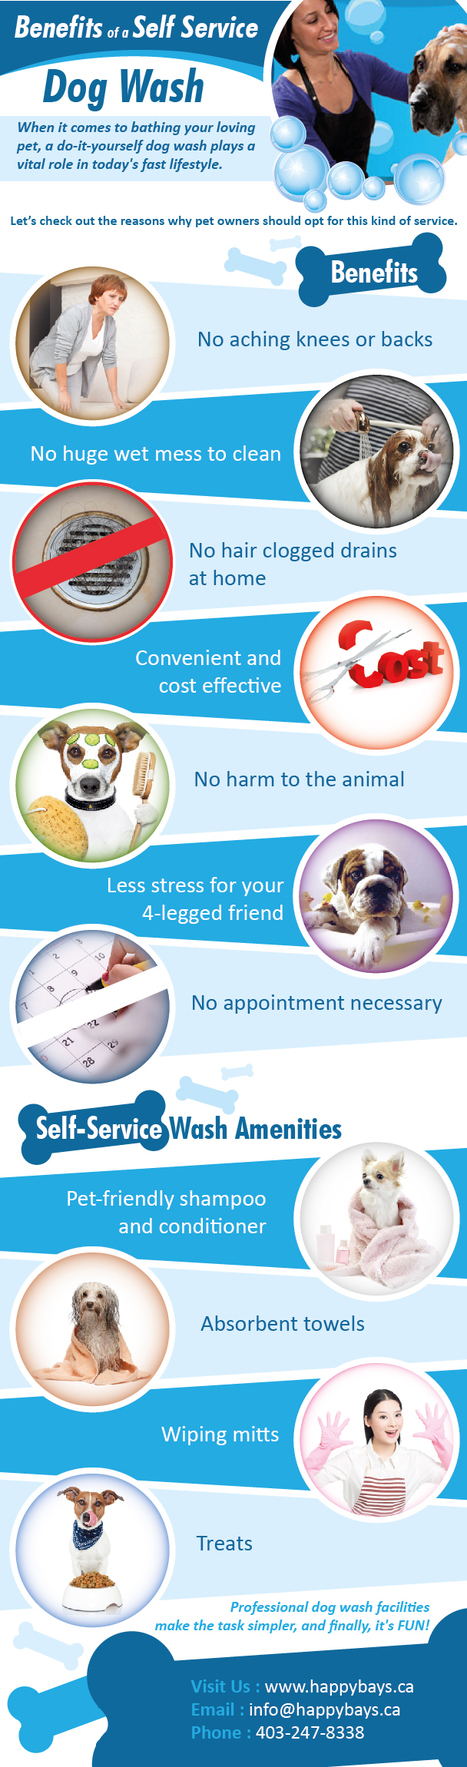 Benefits of a Self Service Dog Wash | Good Dog and Pet Washing Service | Scoop.it